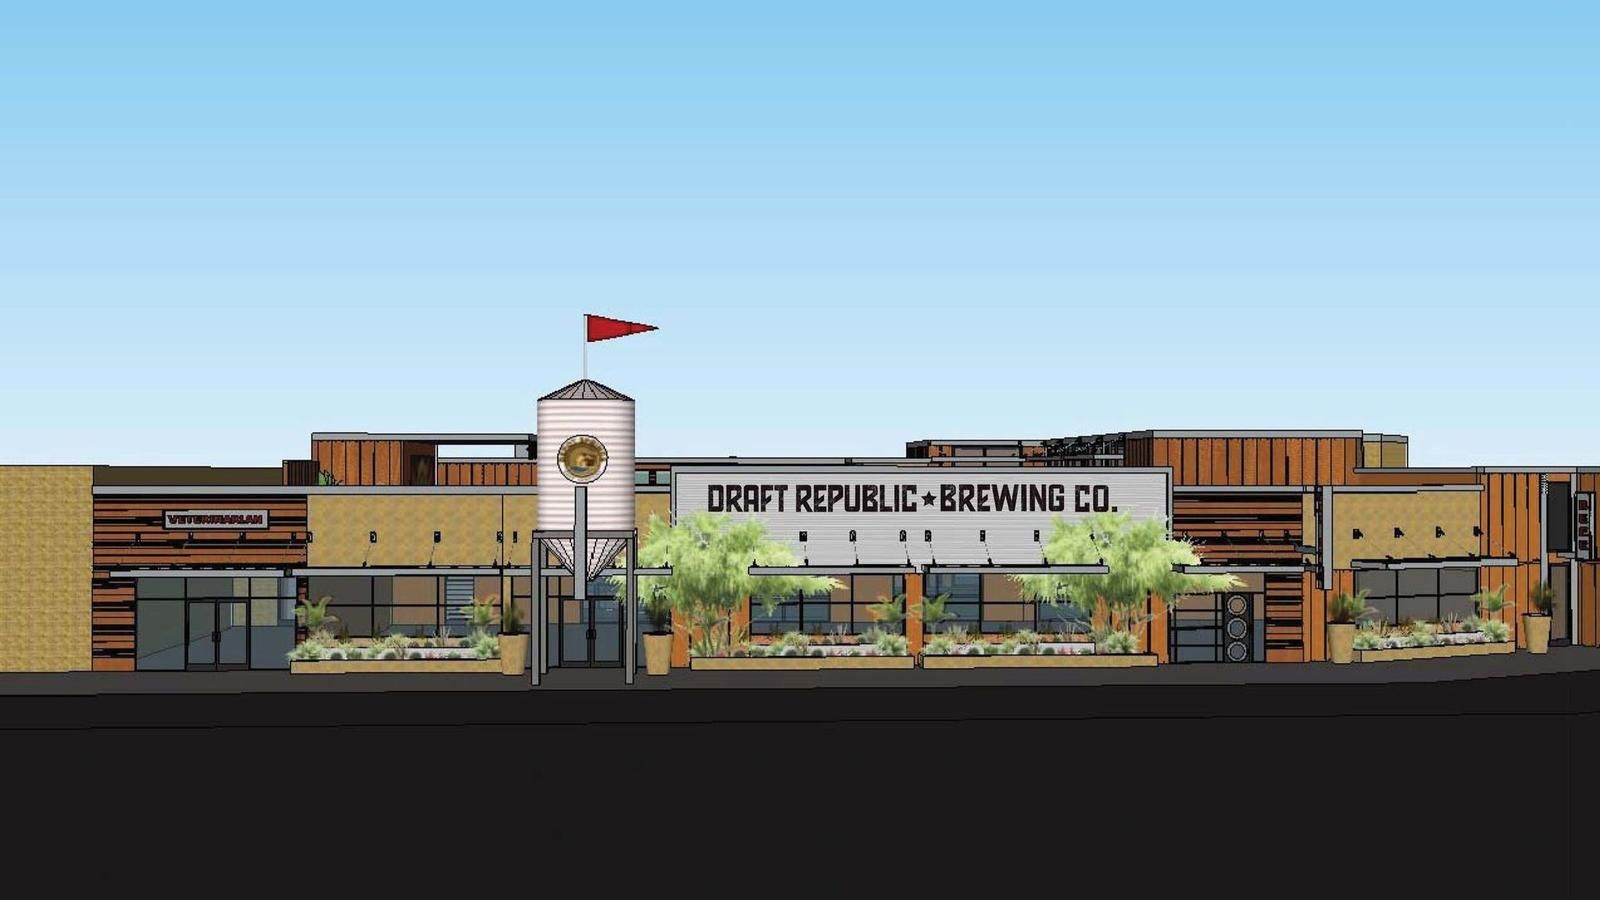 The Cohn Restaurant Group has taken over the former Depot Springs project in La Mesa and plans to build an expansive restaurant and brewery. (Courtesy/Cohn Restaurant Group)